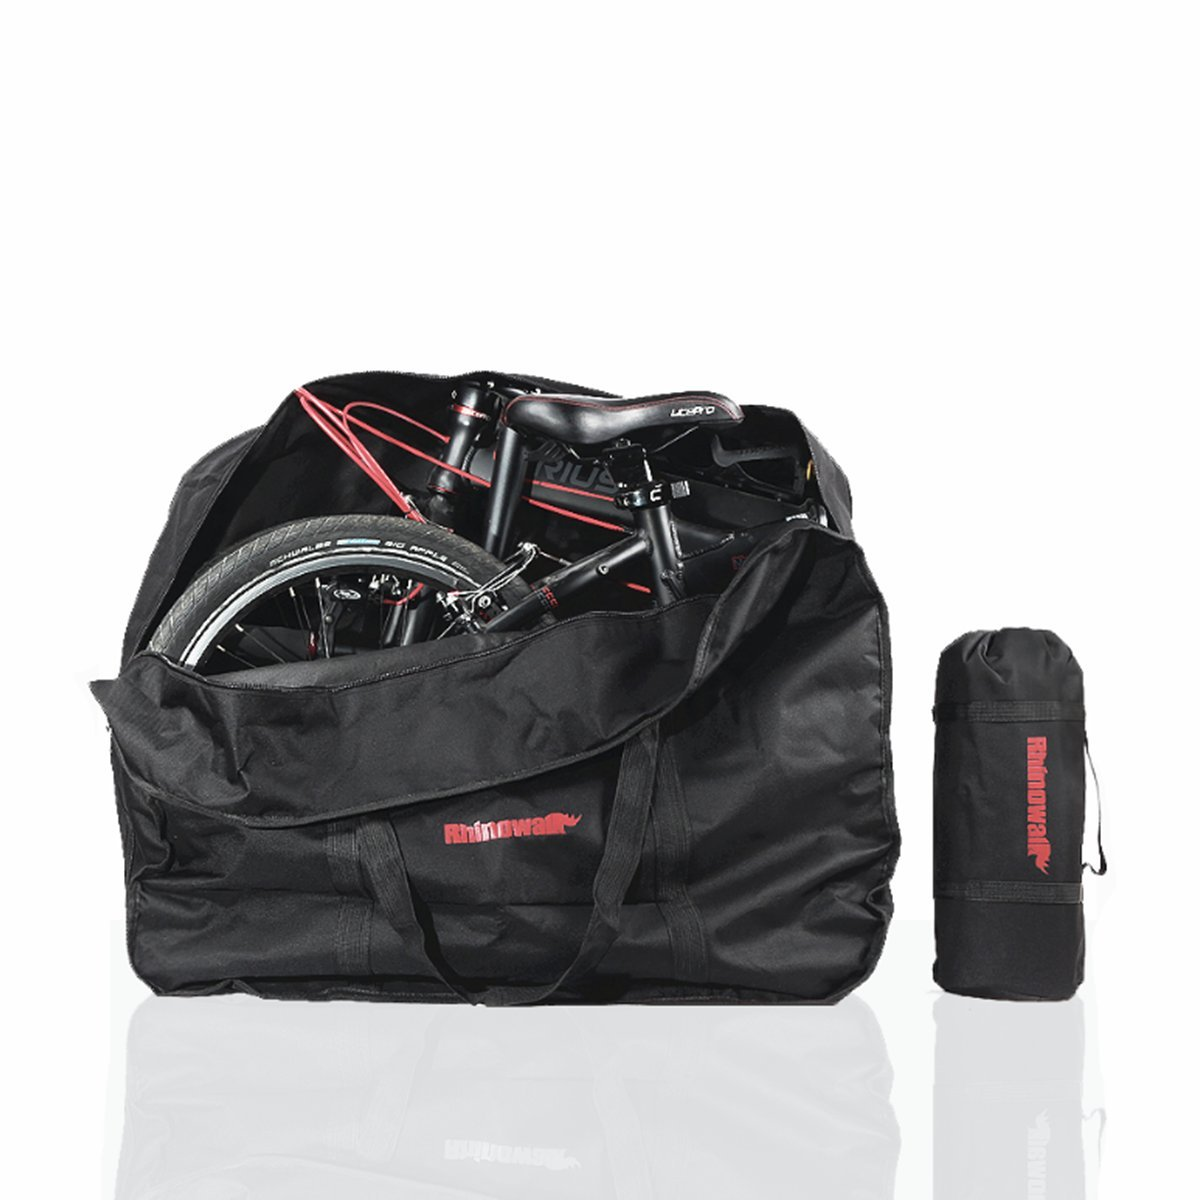 AMOMO Folding Bike Bag 14 inch to 20 inch Bicycle Travel Carrier Case Box Carry Bag Pouch Bike Transport Case